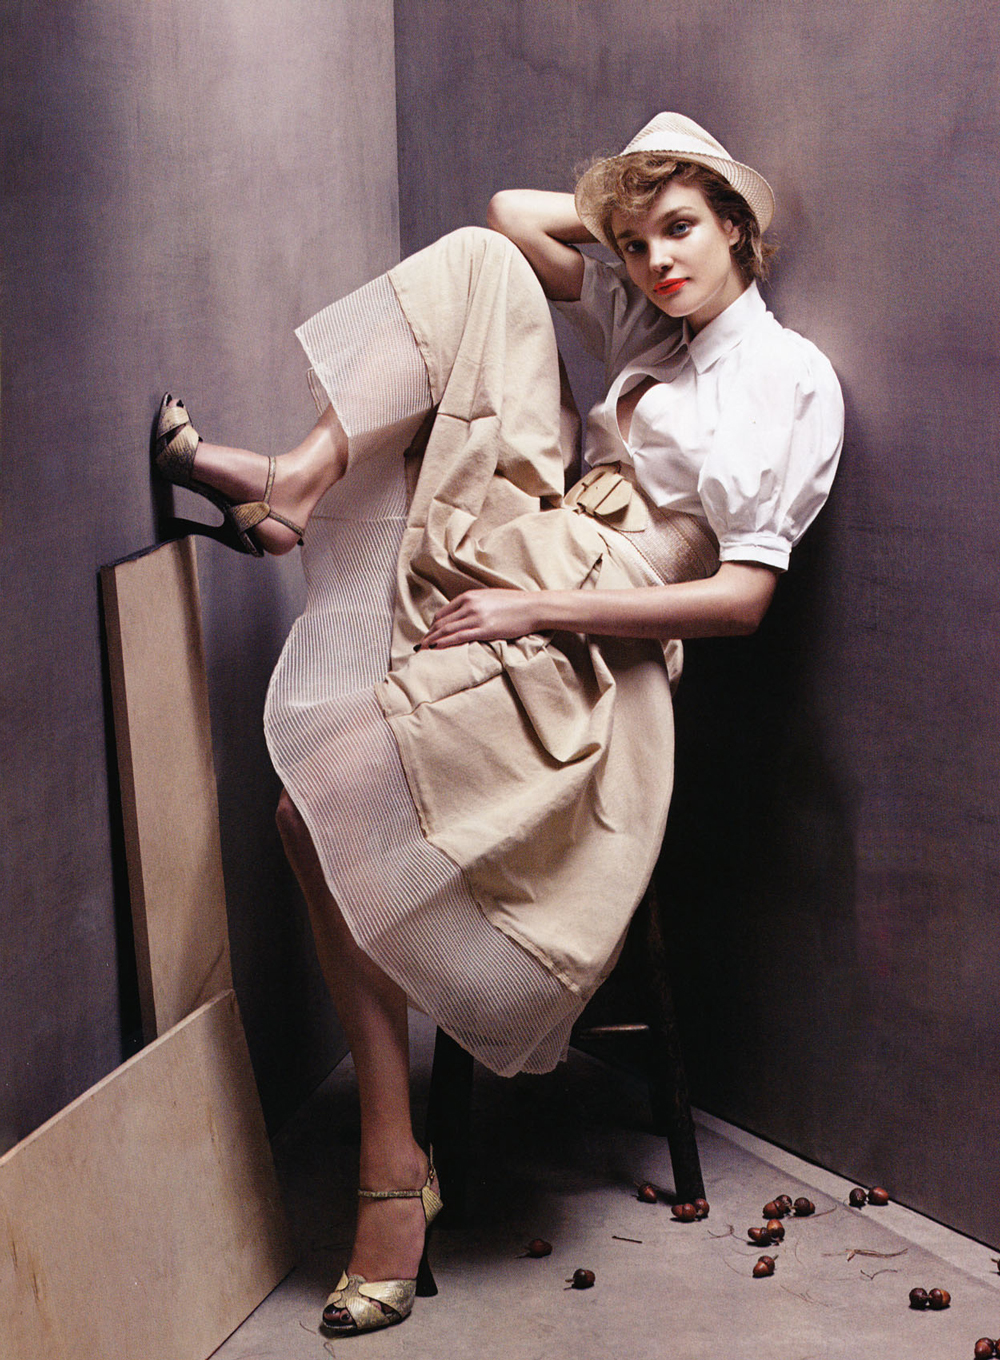 Peerless Natalia Vodianova wearing Donna Karan in Vogue US January 2008 (photography: Steven Meisel, styling: Grace Coddington) via www.fashionedbylove.co.uk